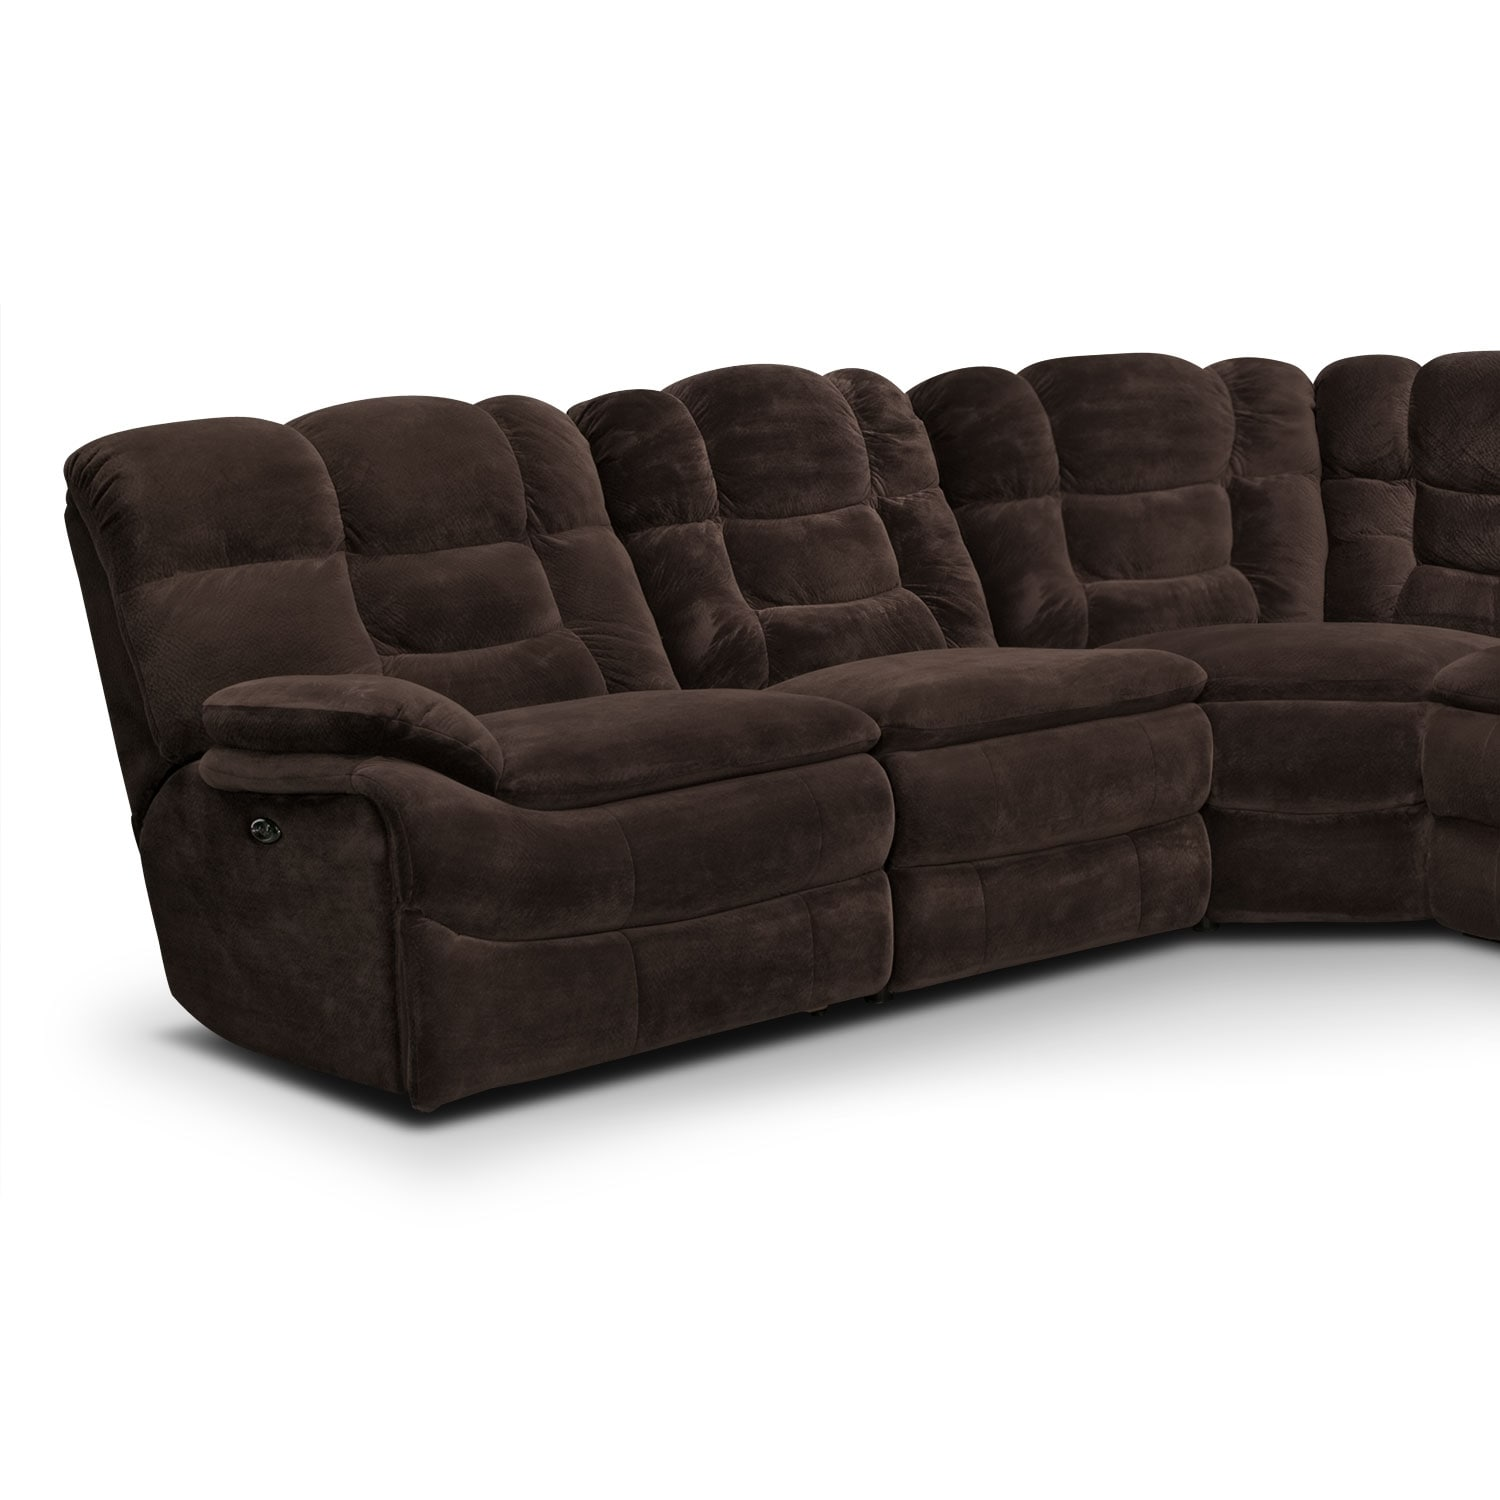 Big Softie 6 Piece Power Reclining Sectional Chocolate